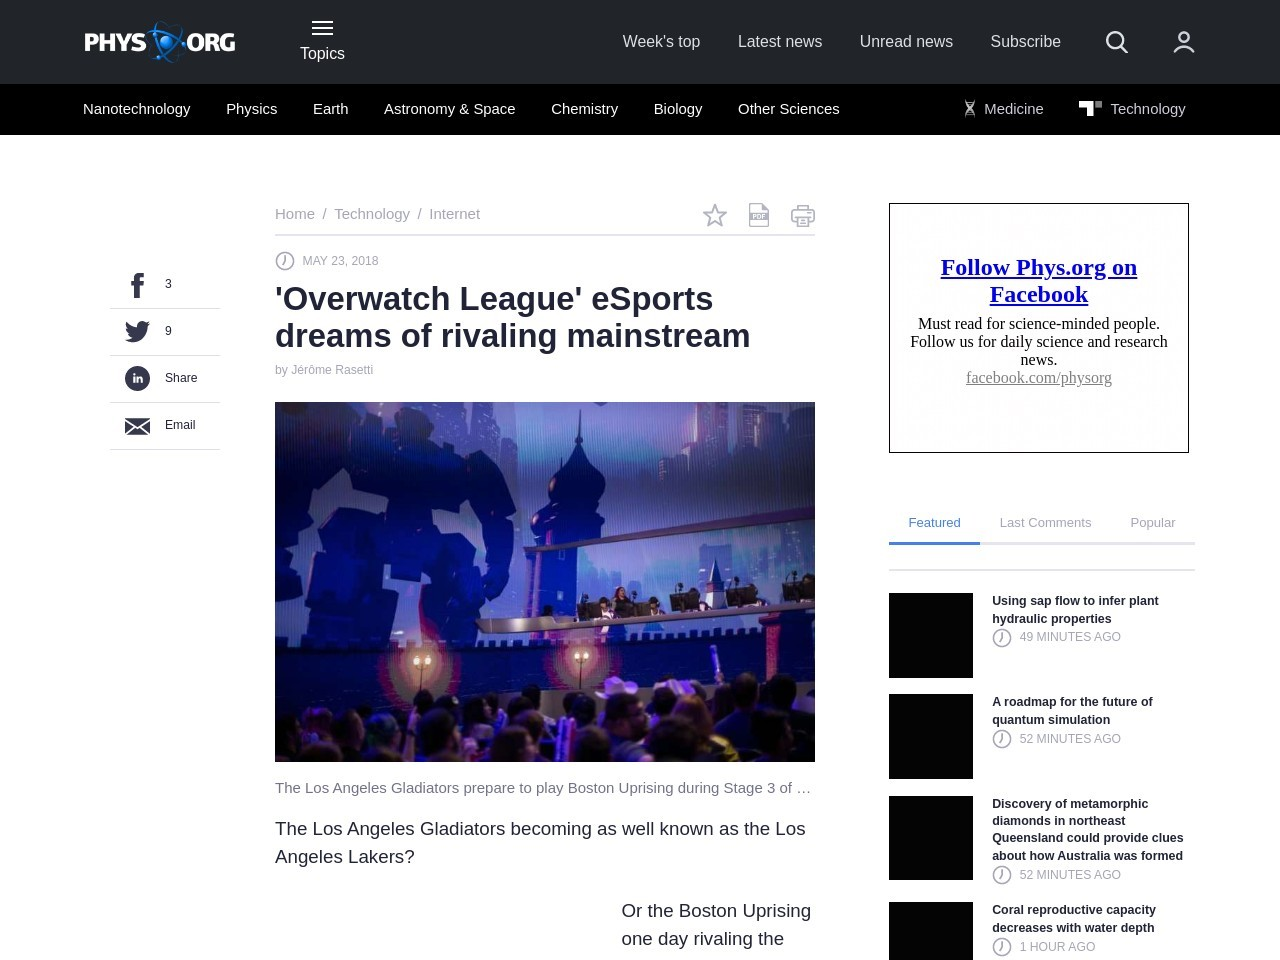 'Overwatch League' eSports dreams of rivaling mainstream